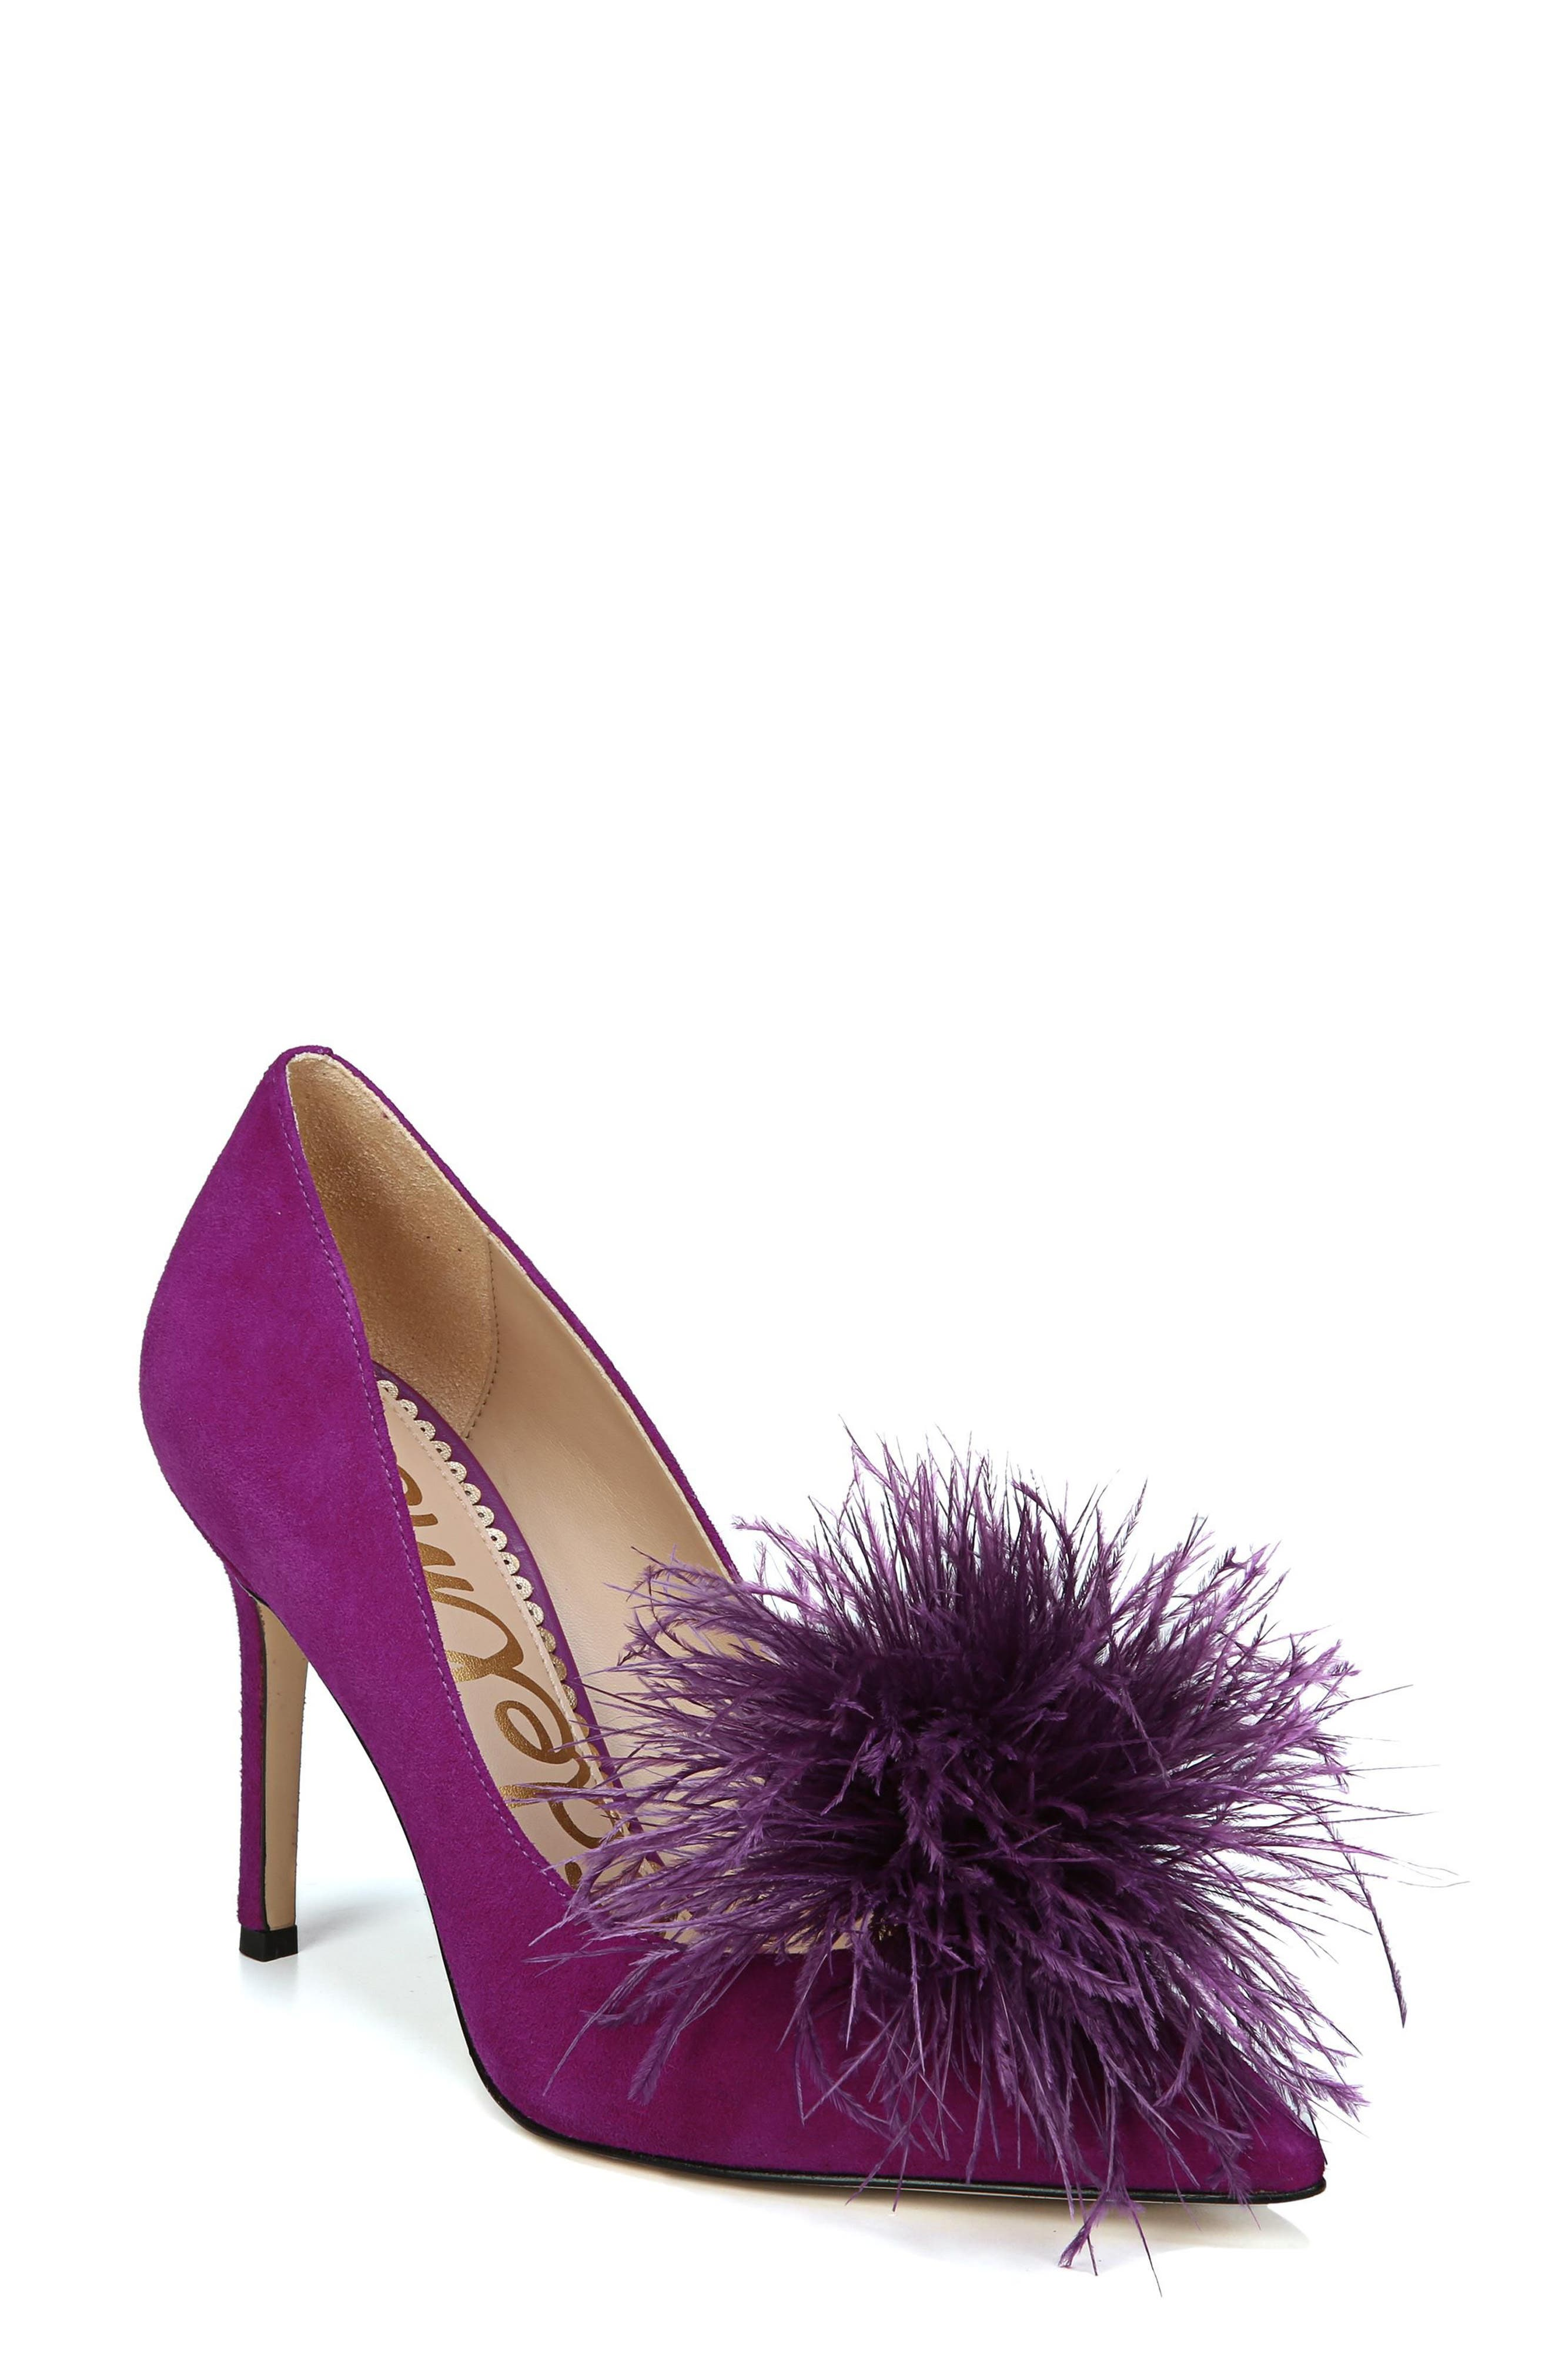 Haide Feather Pompom Pump,                         Main,                         color, Laser Purple Leather